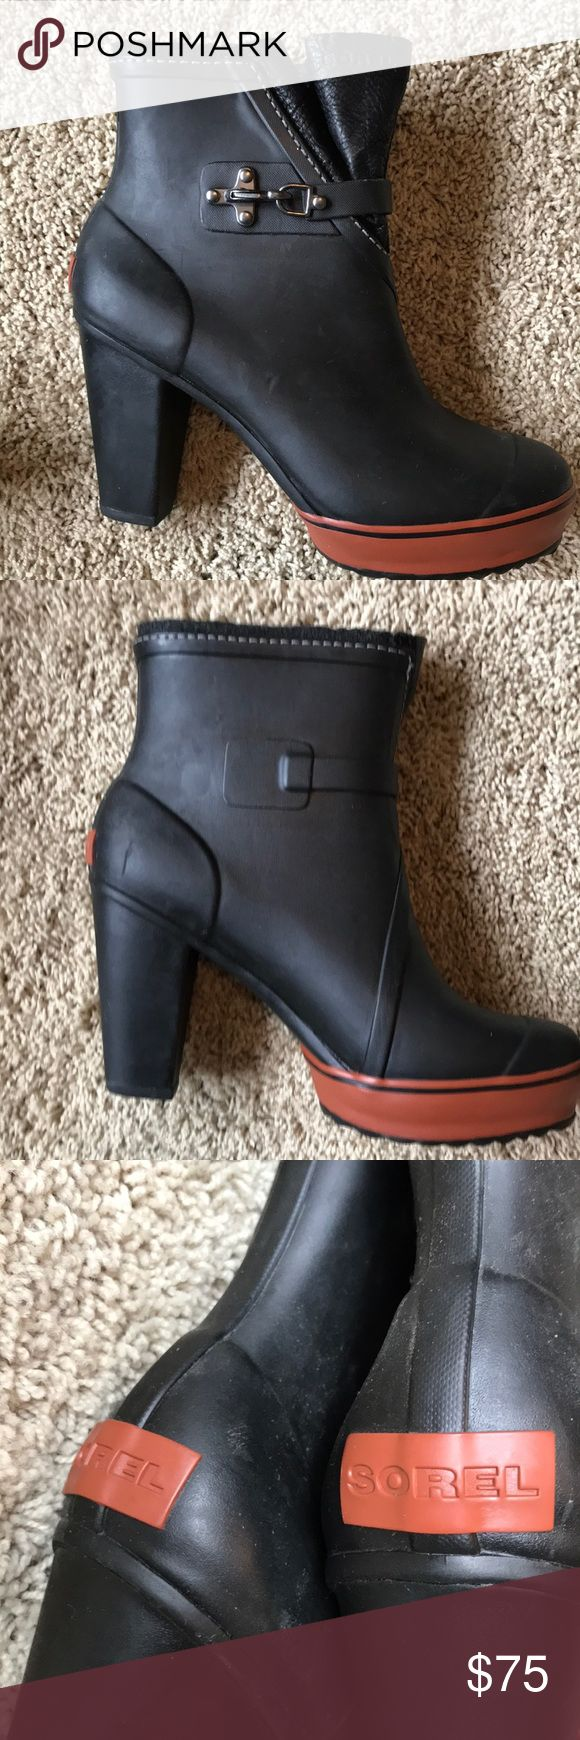 Sorel Rain Boots Worn twice. Fully waterproof. Platform with 4 inch heel. Gorgeous but my knee just can't take the heel. Sorel Shoes Winter & Rain Boots